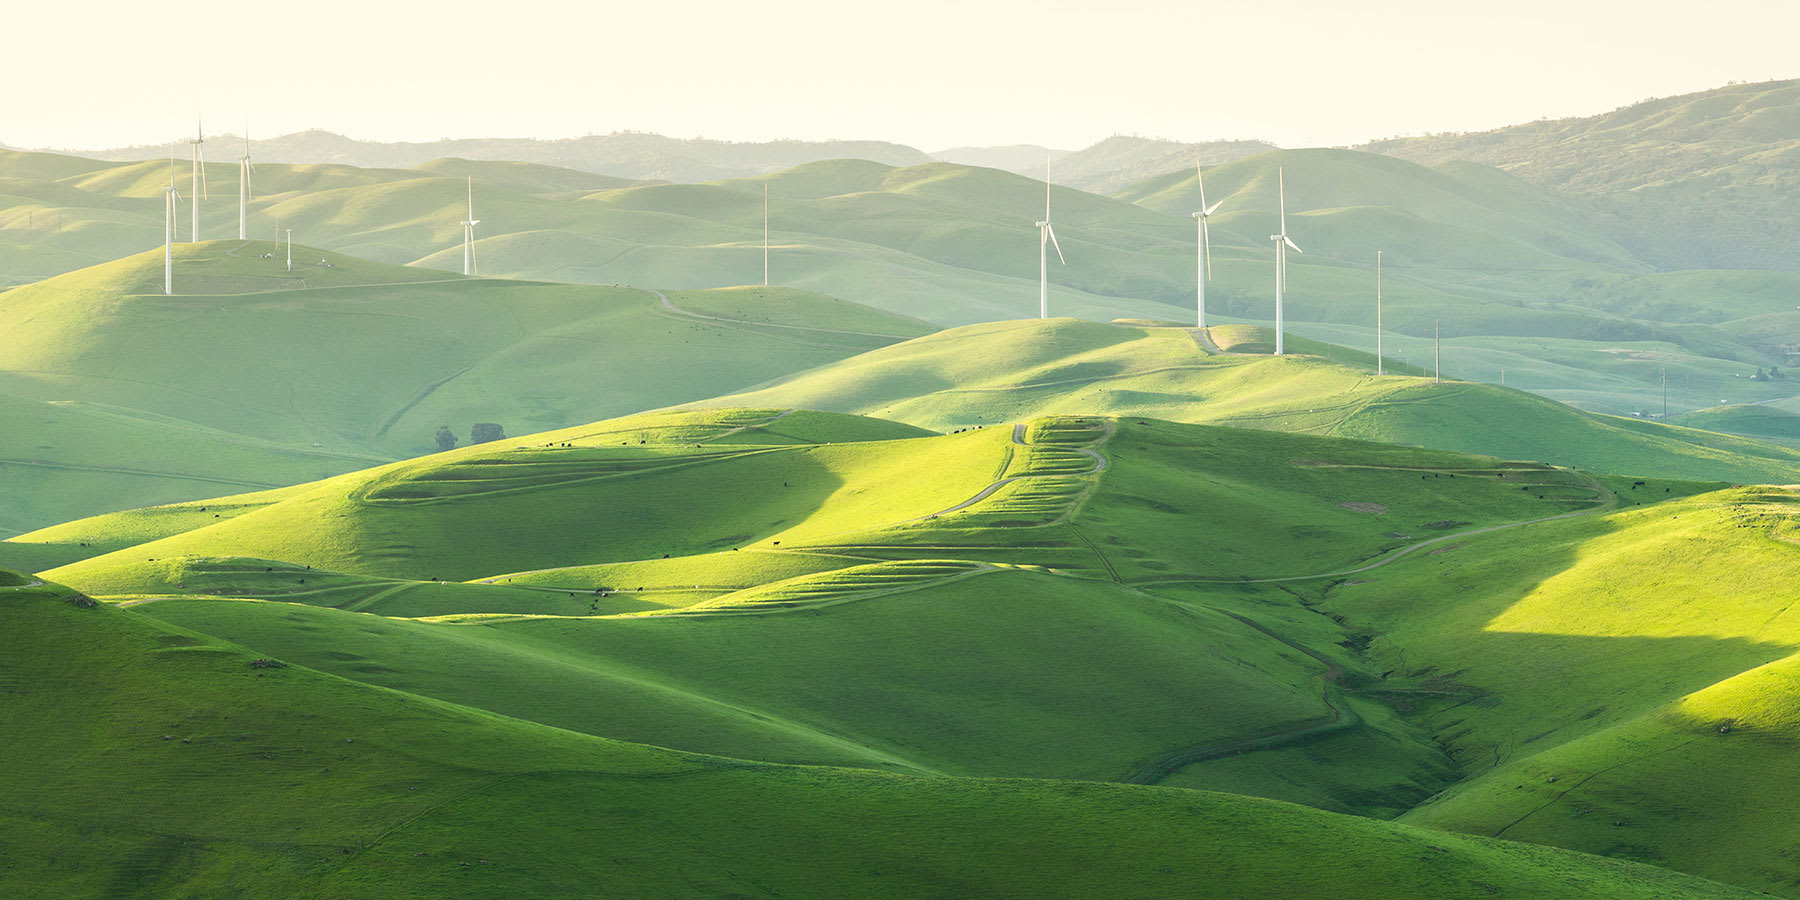 Wind turbines in green fields at Altamont Pass, California